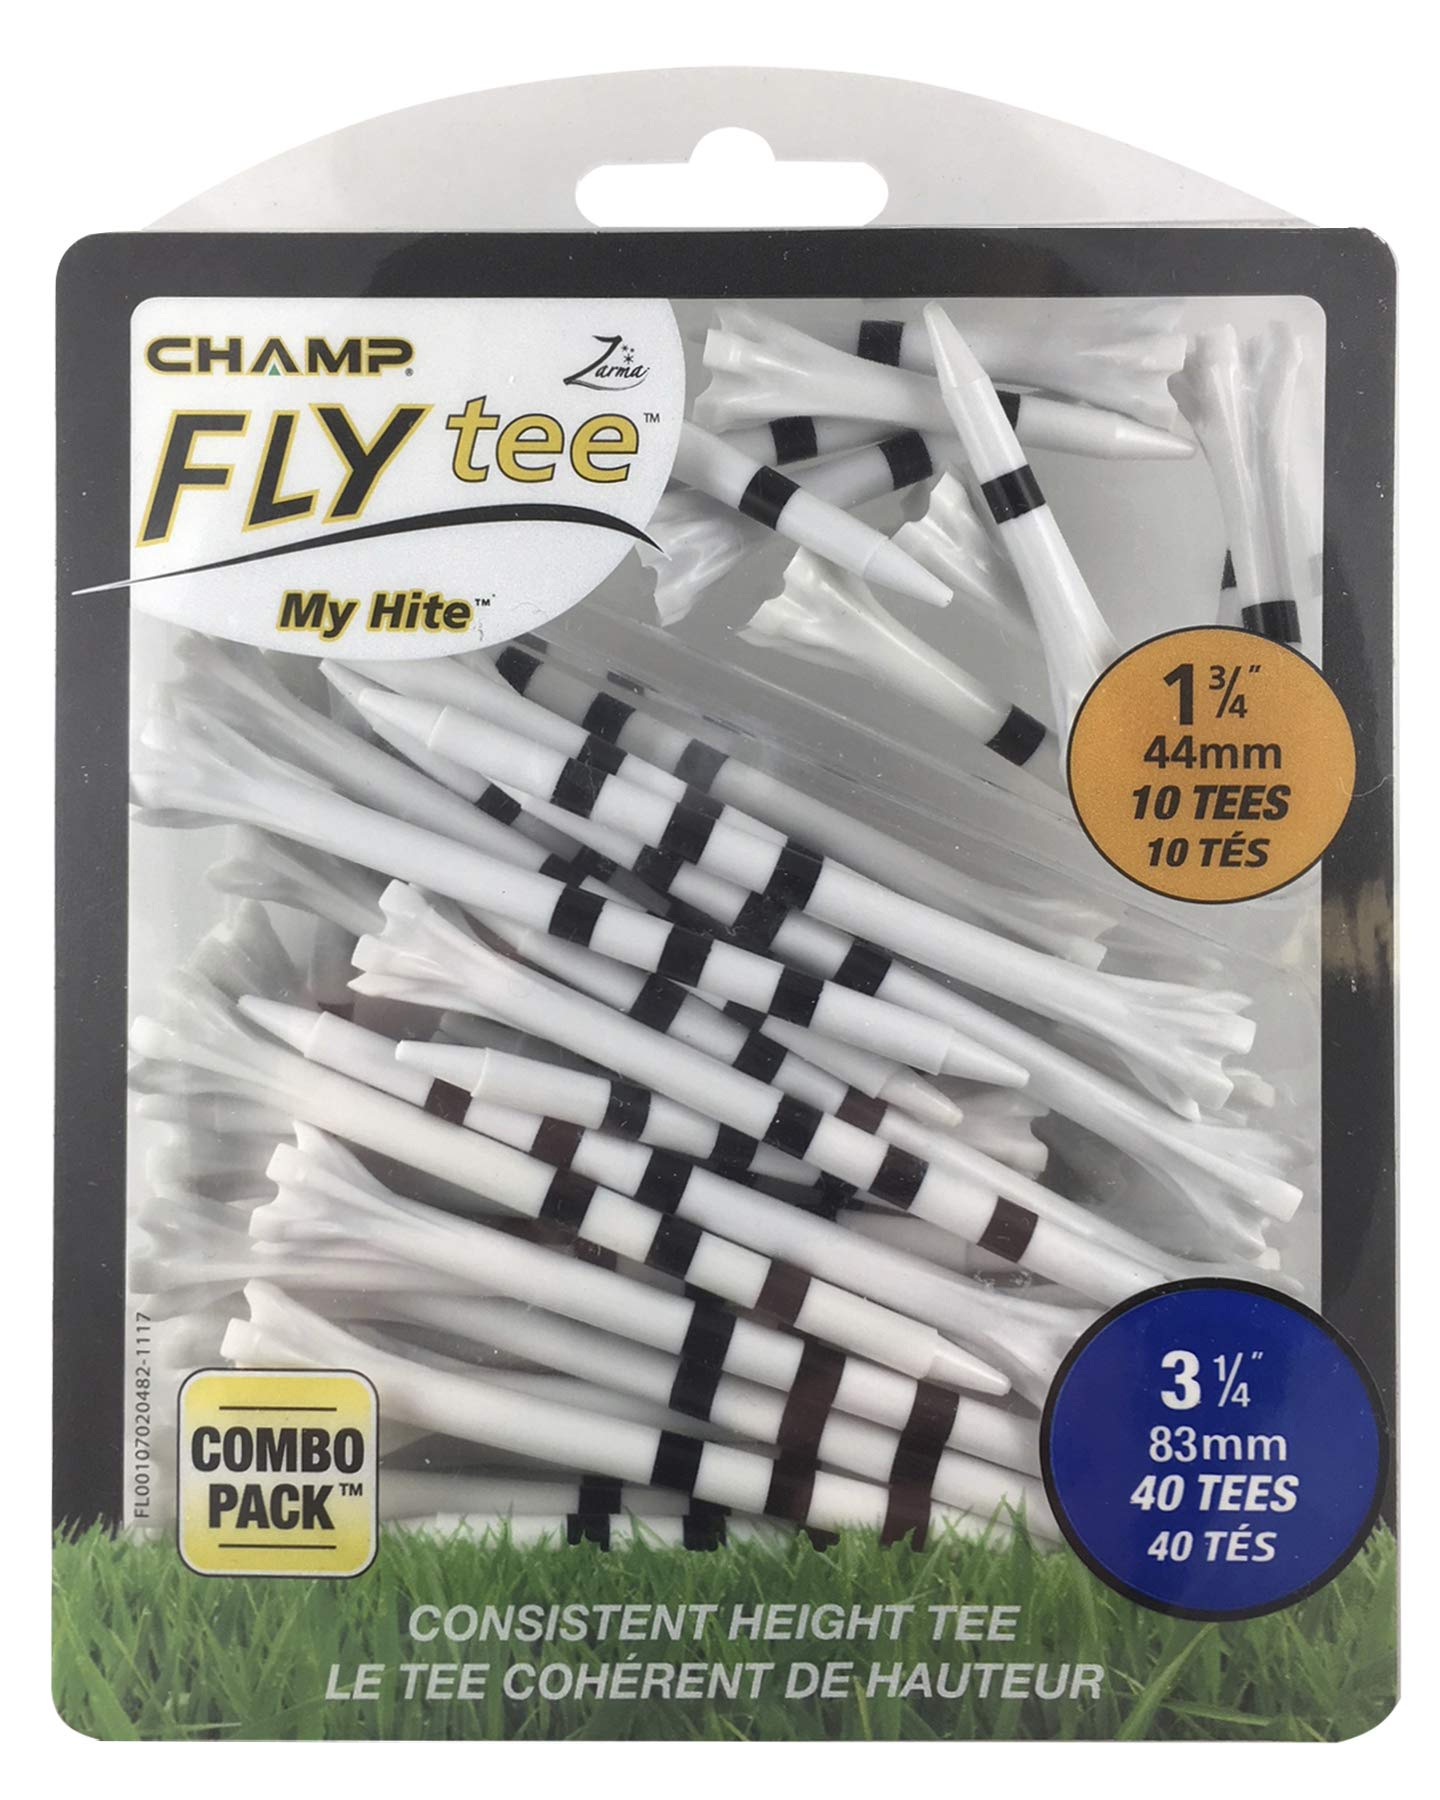 Champ 86505 Zarma Flytee My Hite 3-1/4'' Combo Pack White with Black Stripes Golf Tees by Champ